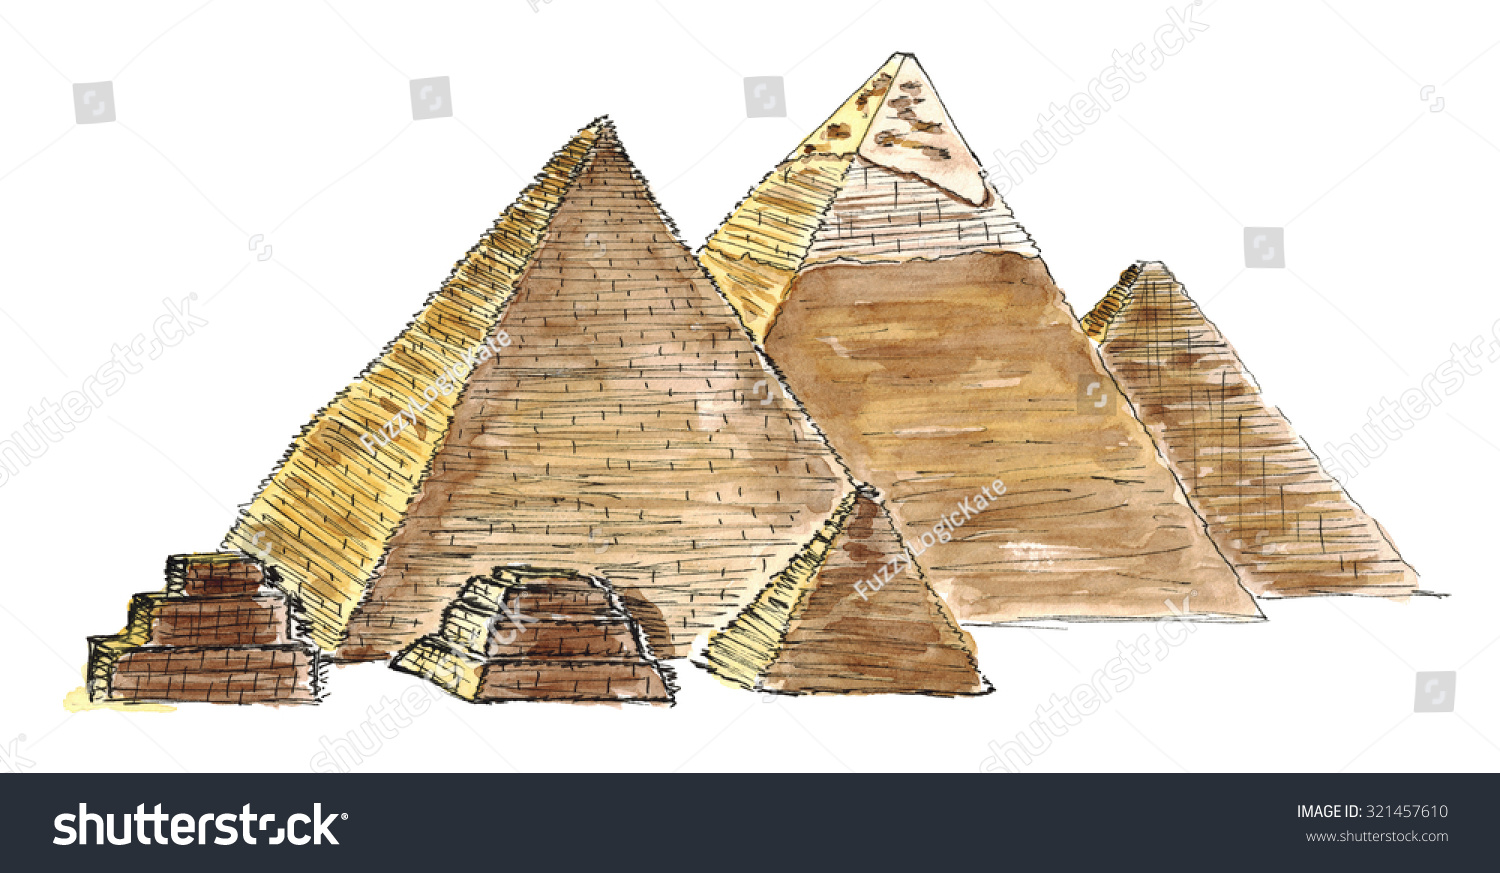 an overview of the architecture of the pyramids of egypt The step pyramid of djozer built c2630 bce the red pyramid of snefru built c2600 bce what are the egyptian pyramids arguably the most famous form of late prehistoric art, the pyramids of ancient egypt are the world's largest funerary edifices or tombsdeveloped from the mastaba tomb, they are one of the most enduring symbols of egyptian art in general and egyptian architecture in particular.